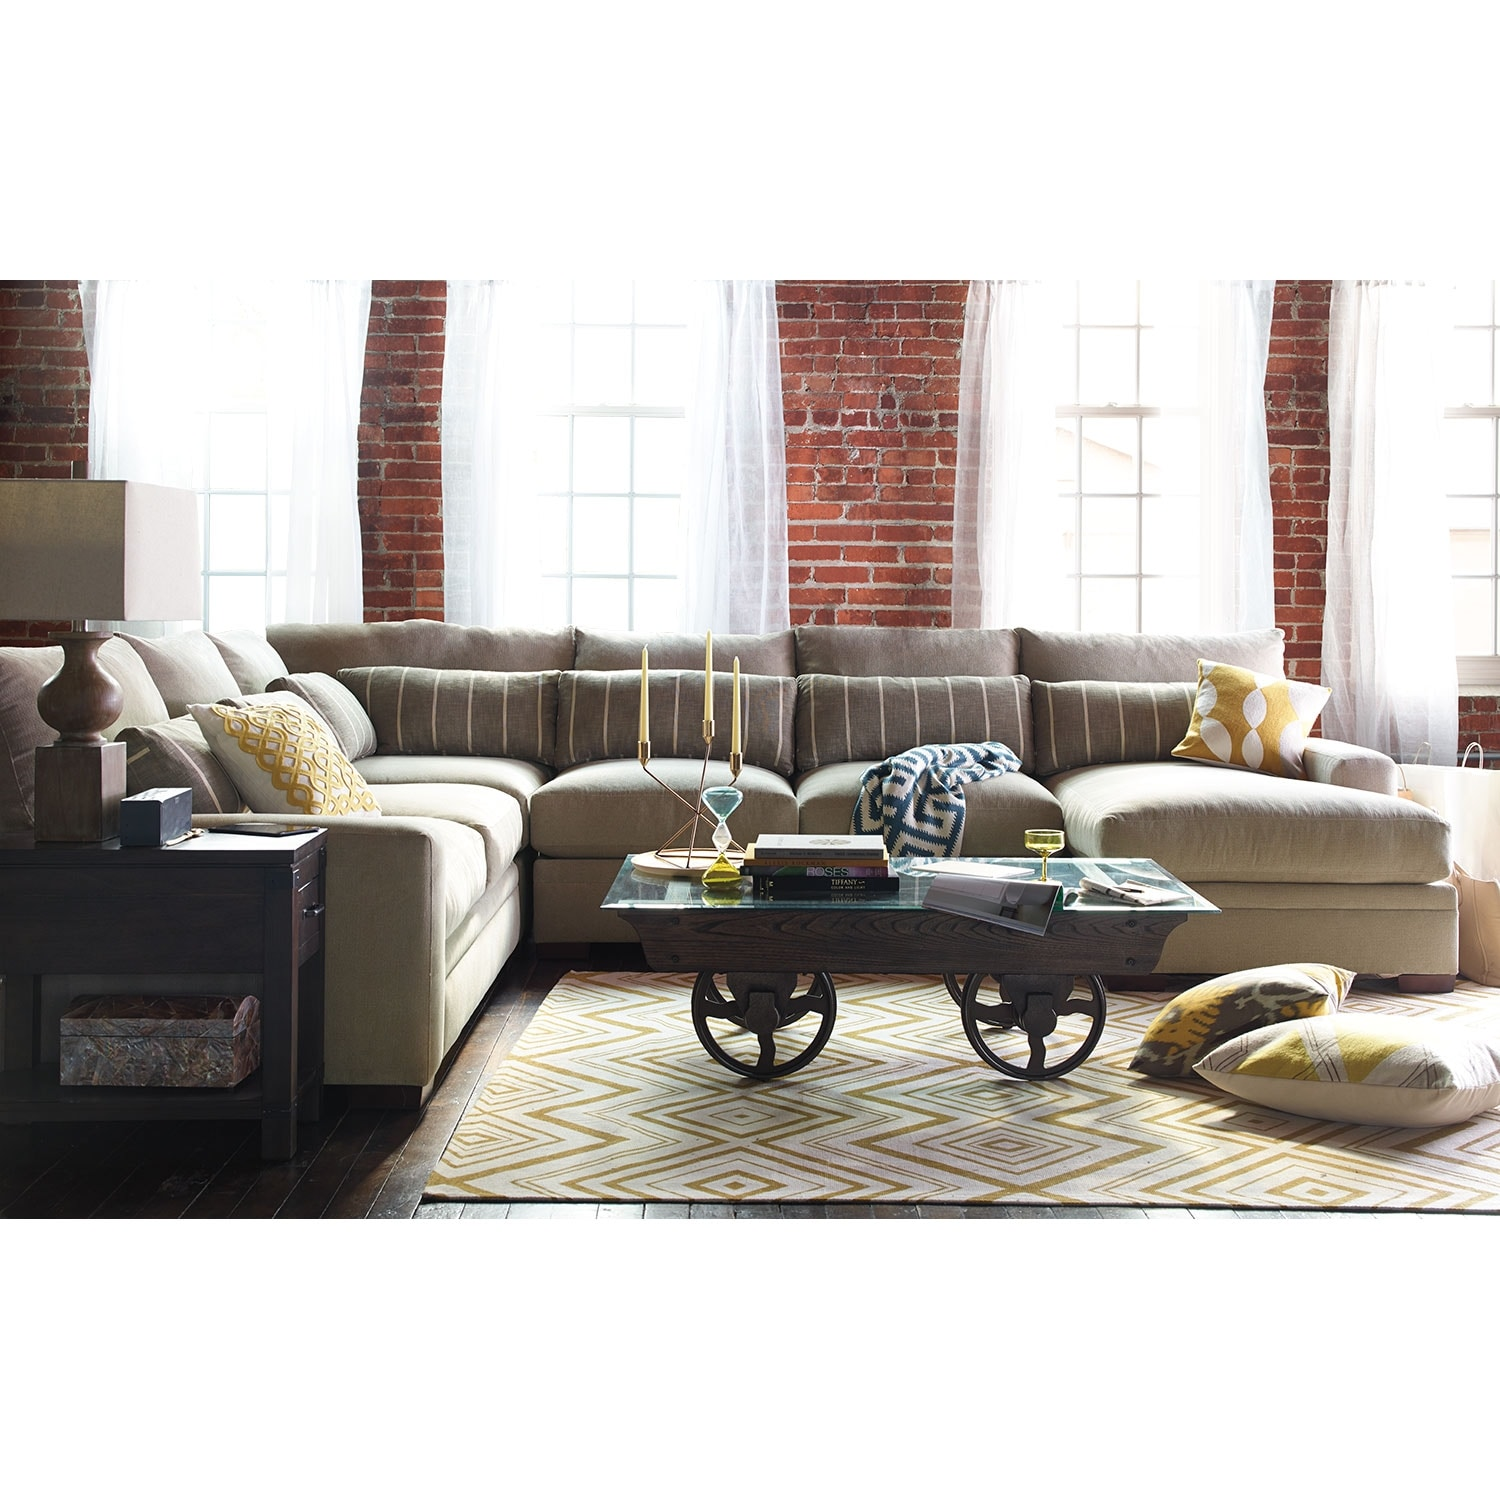 ventura 4-piece right-facing sectional - buff | value city furniture